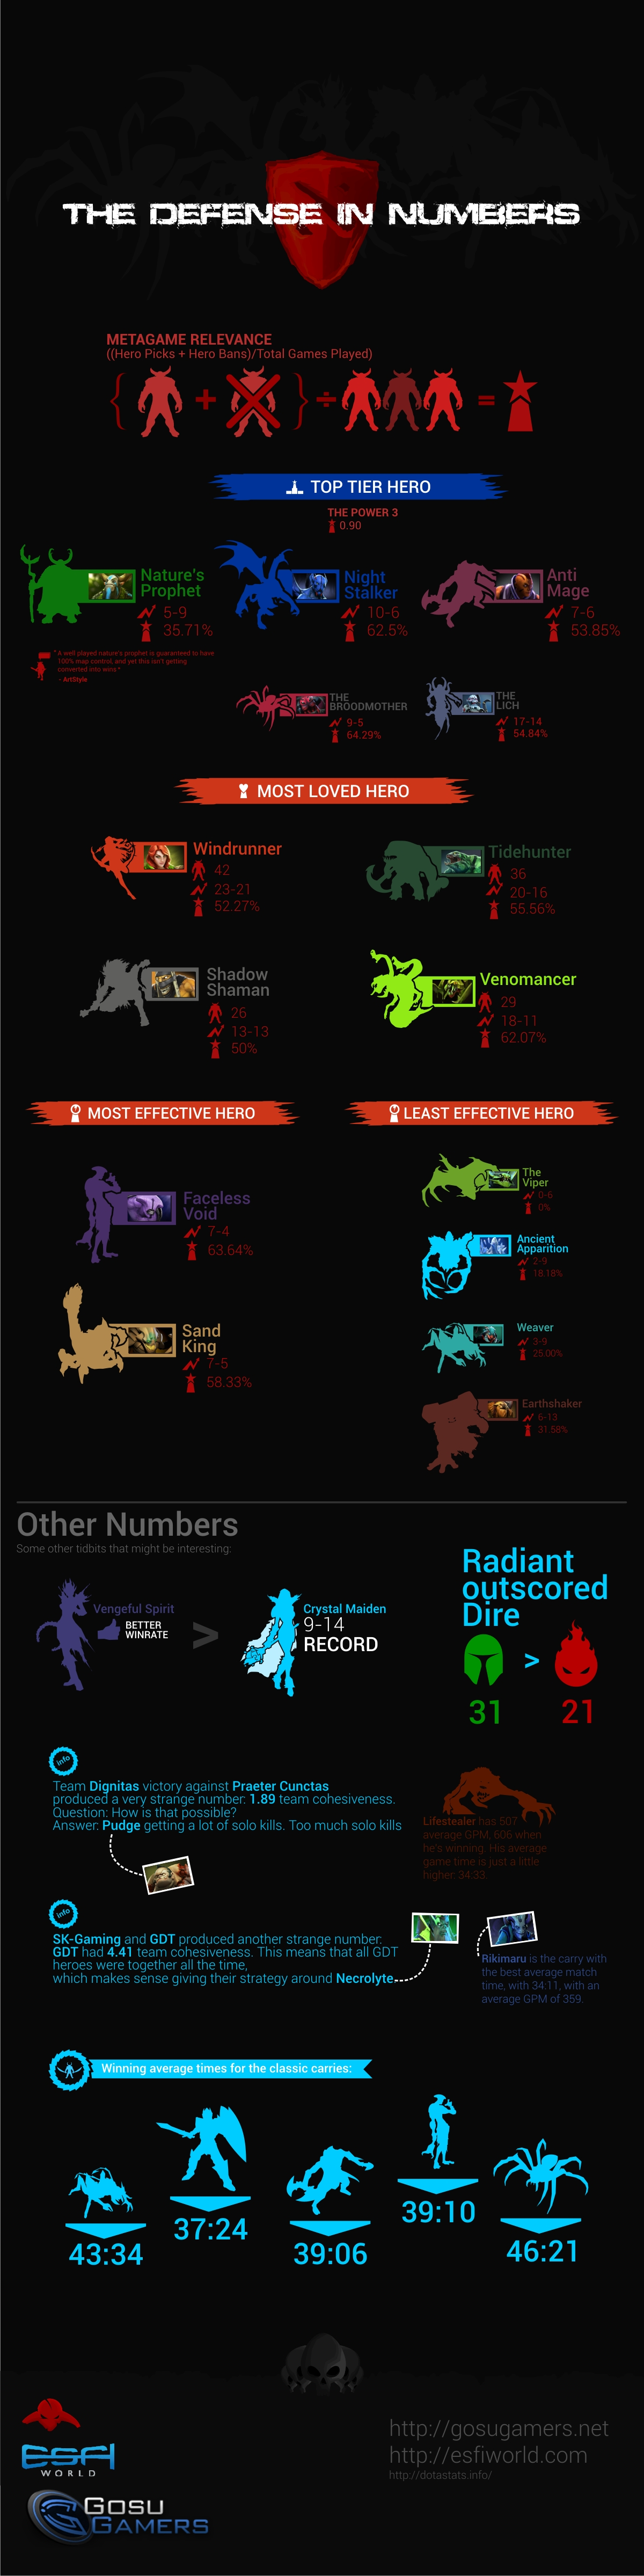 The Defense Dota 2 Tournament in NUMBERS | Visual ly